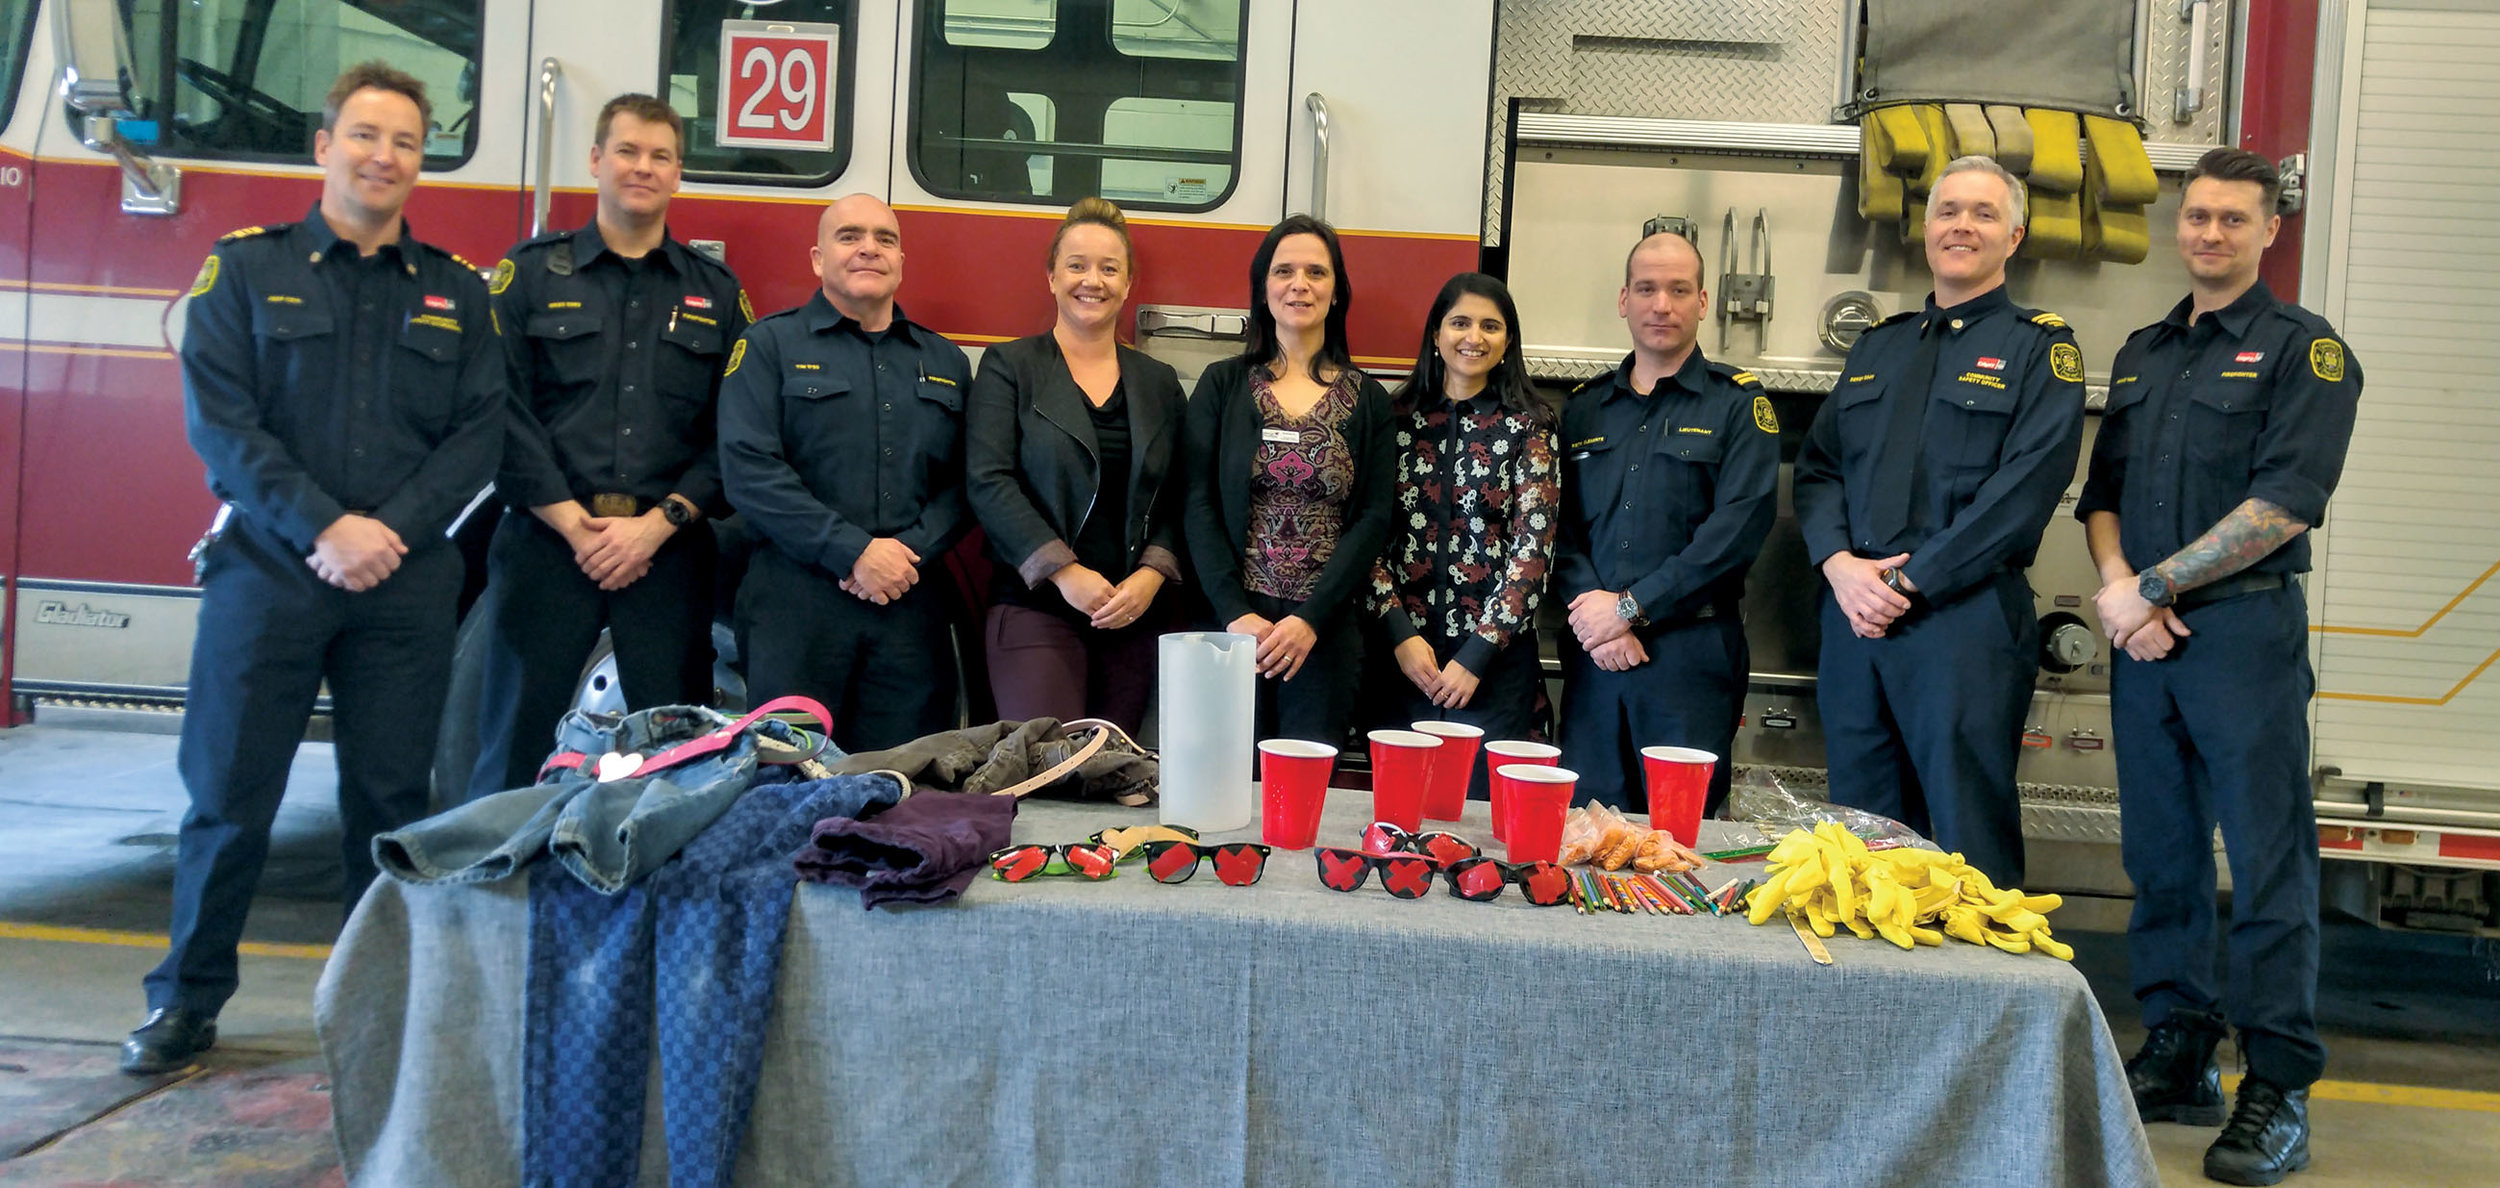 Firefighters, City staff and representatives from the Brenda Strafford Foundation stand together in Station 29 after a dementia awareness training exercise, part of the Dementia Friendly Communities partnership between the organizations.